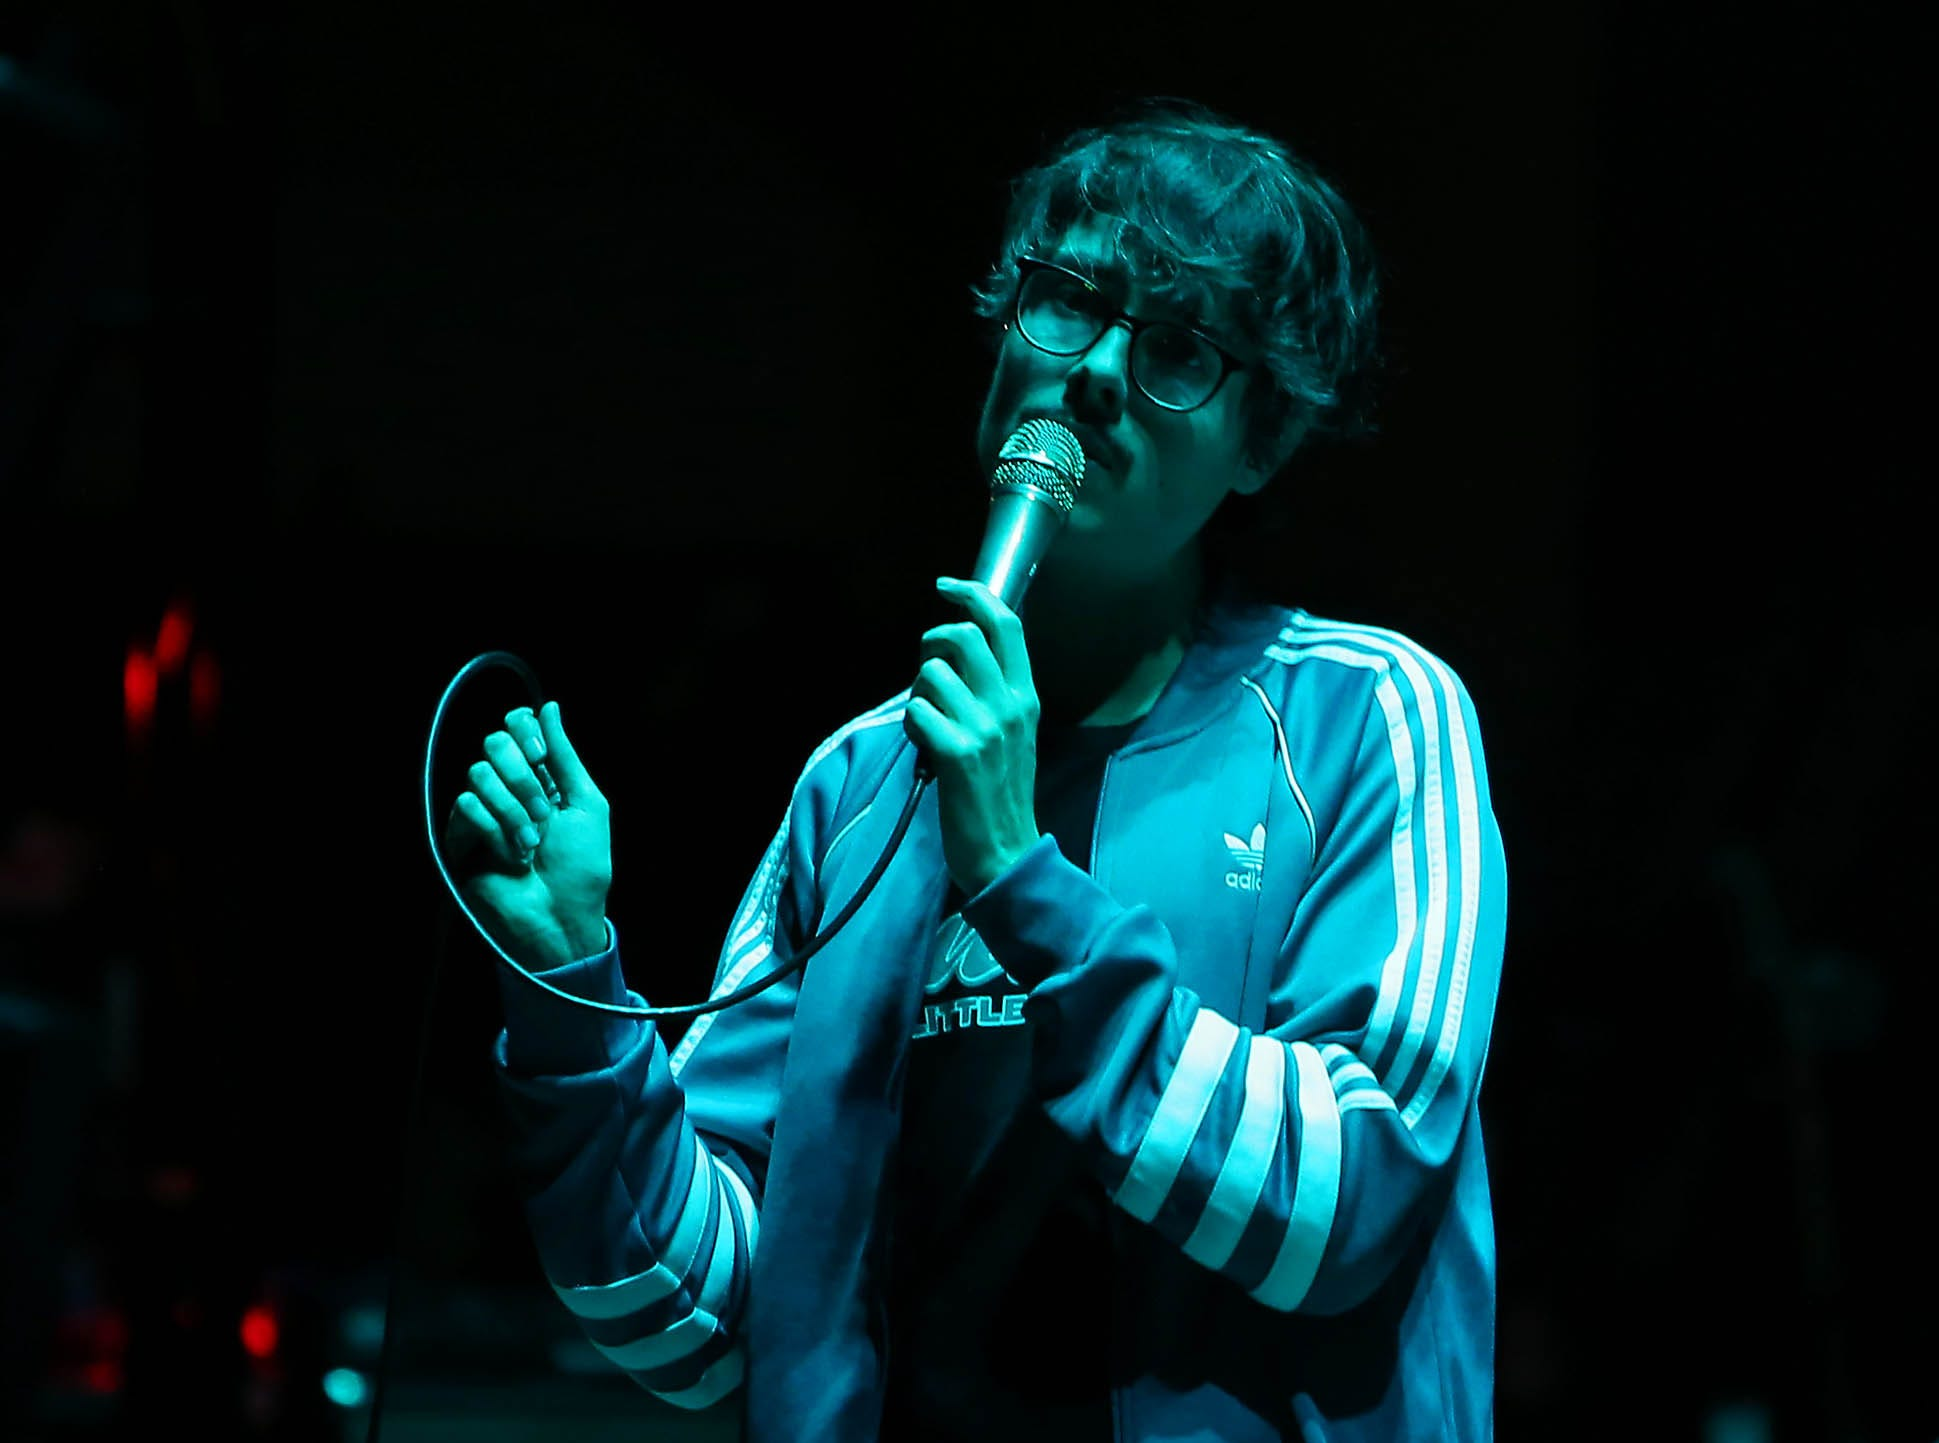 Joywave perform as they open for the Smashing Pumpkins at Mesa Amphitheatre in Mesa on Friday, Dec. 7, 2018.